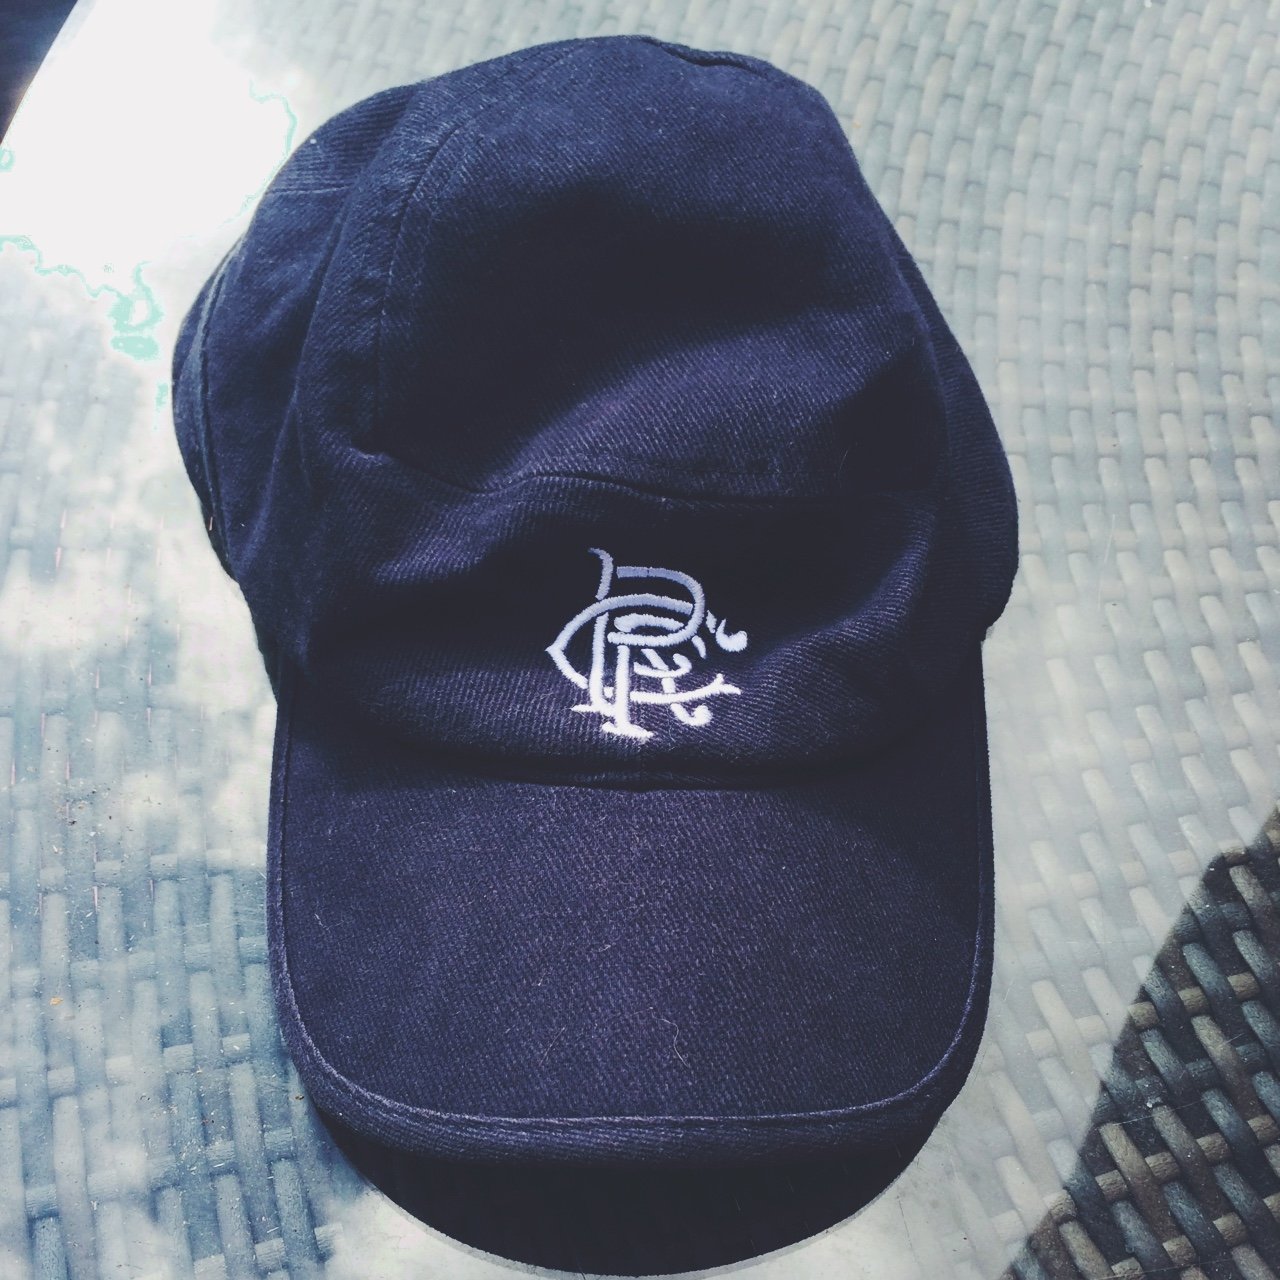 78d6274635e Nike rangers navy blue cap. Great for die hard rangers fans